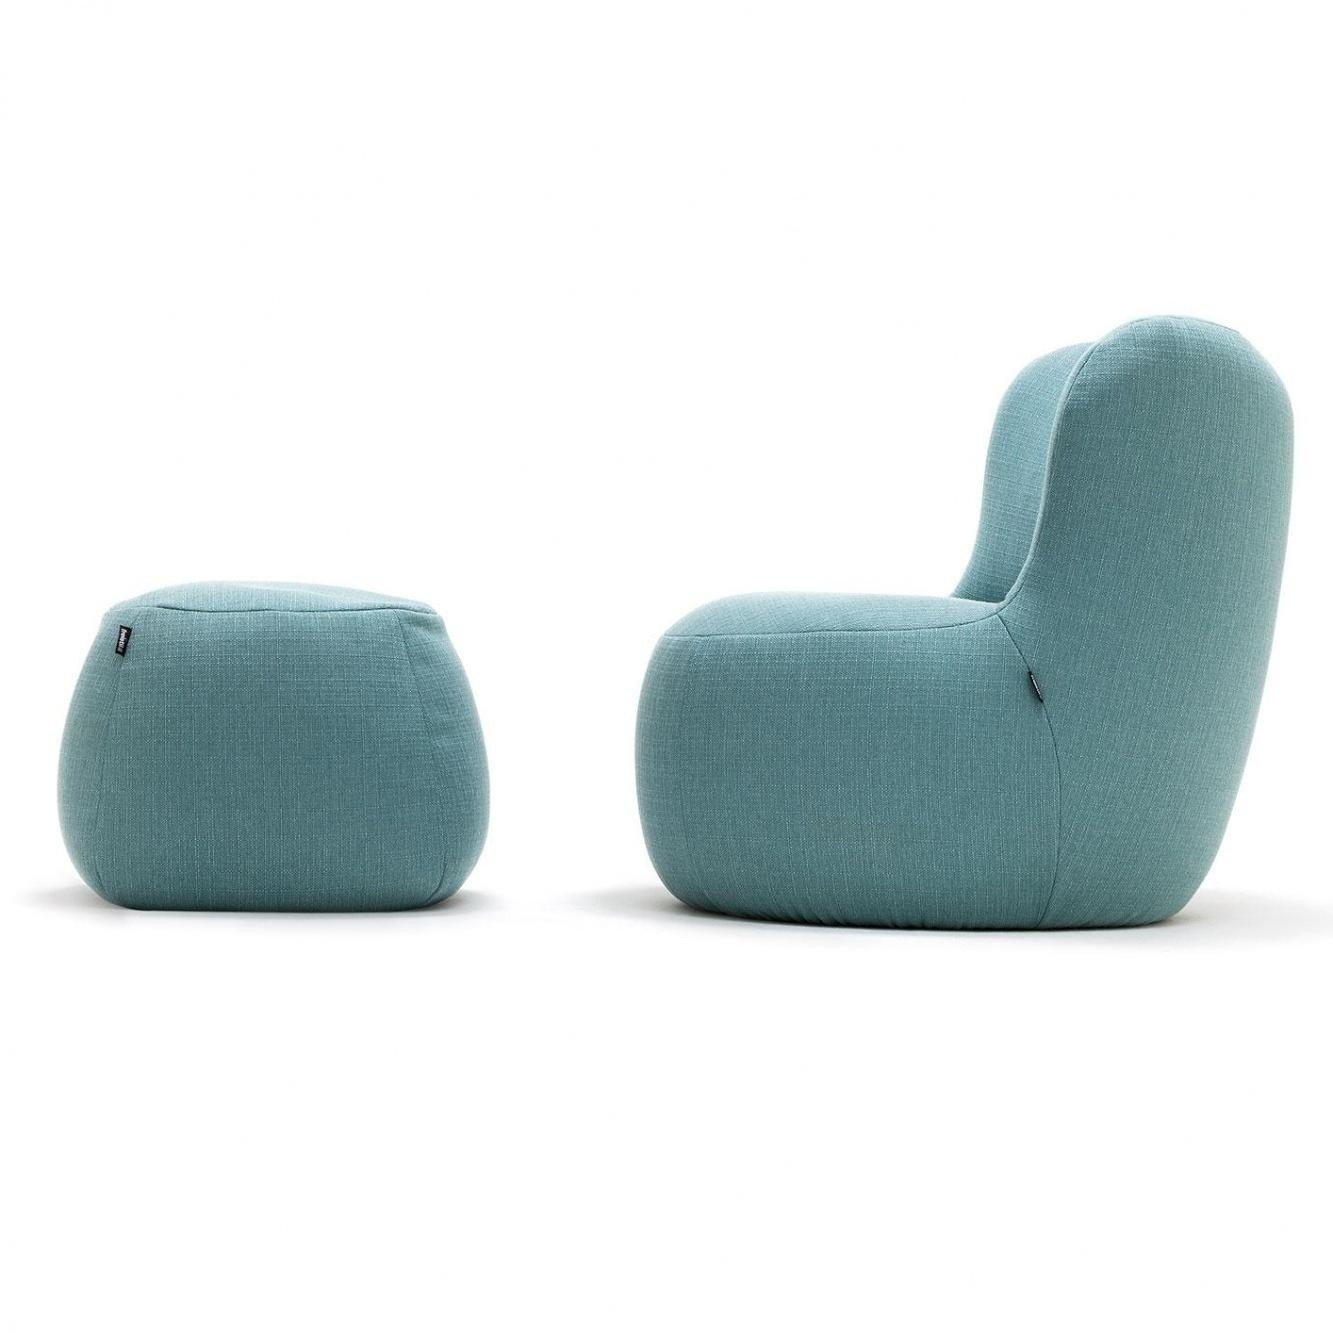 Freistil 173 Freistil Rolf Benz Freistil 173 Pouf | Ambientedirect